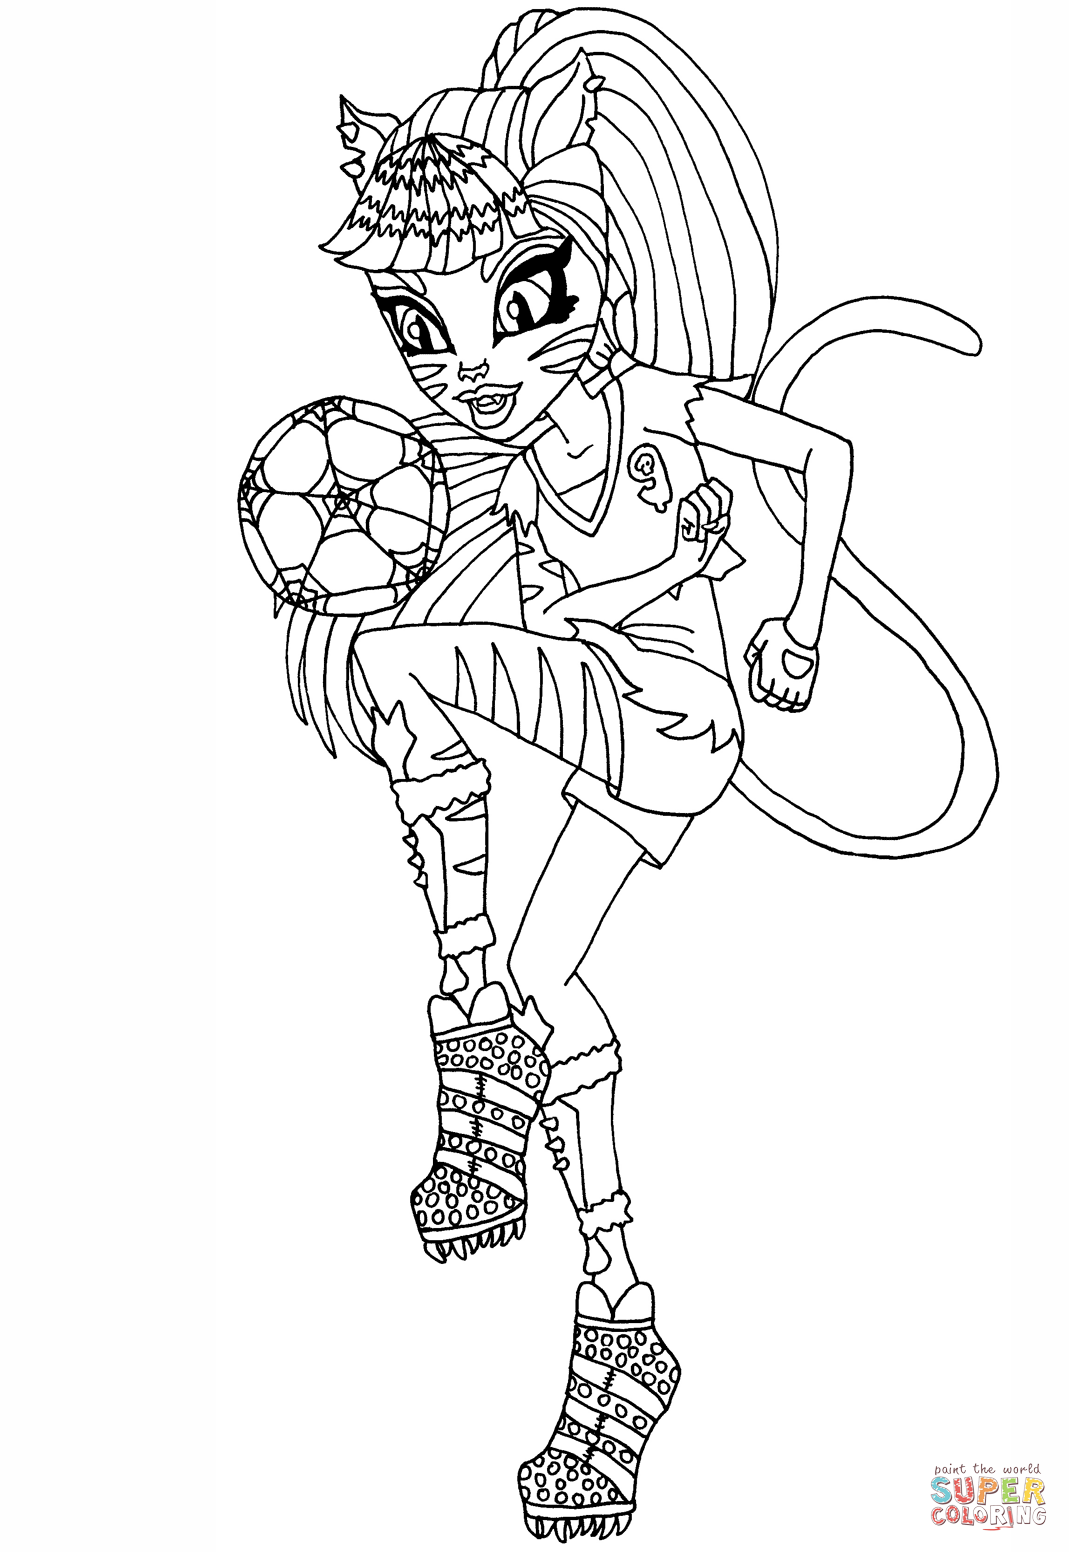 monster high black and white coloring pages ghoul sports toralei coloring page free printable monster high and coloring black white pages